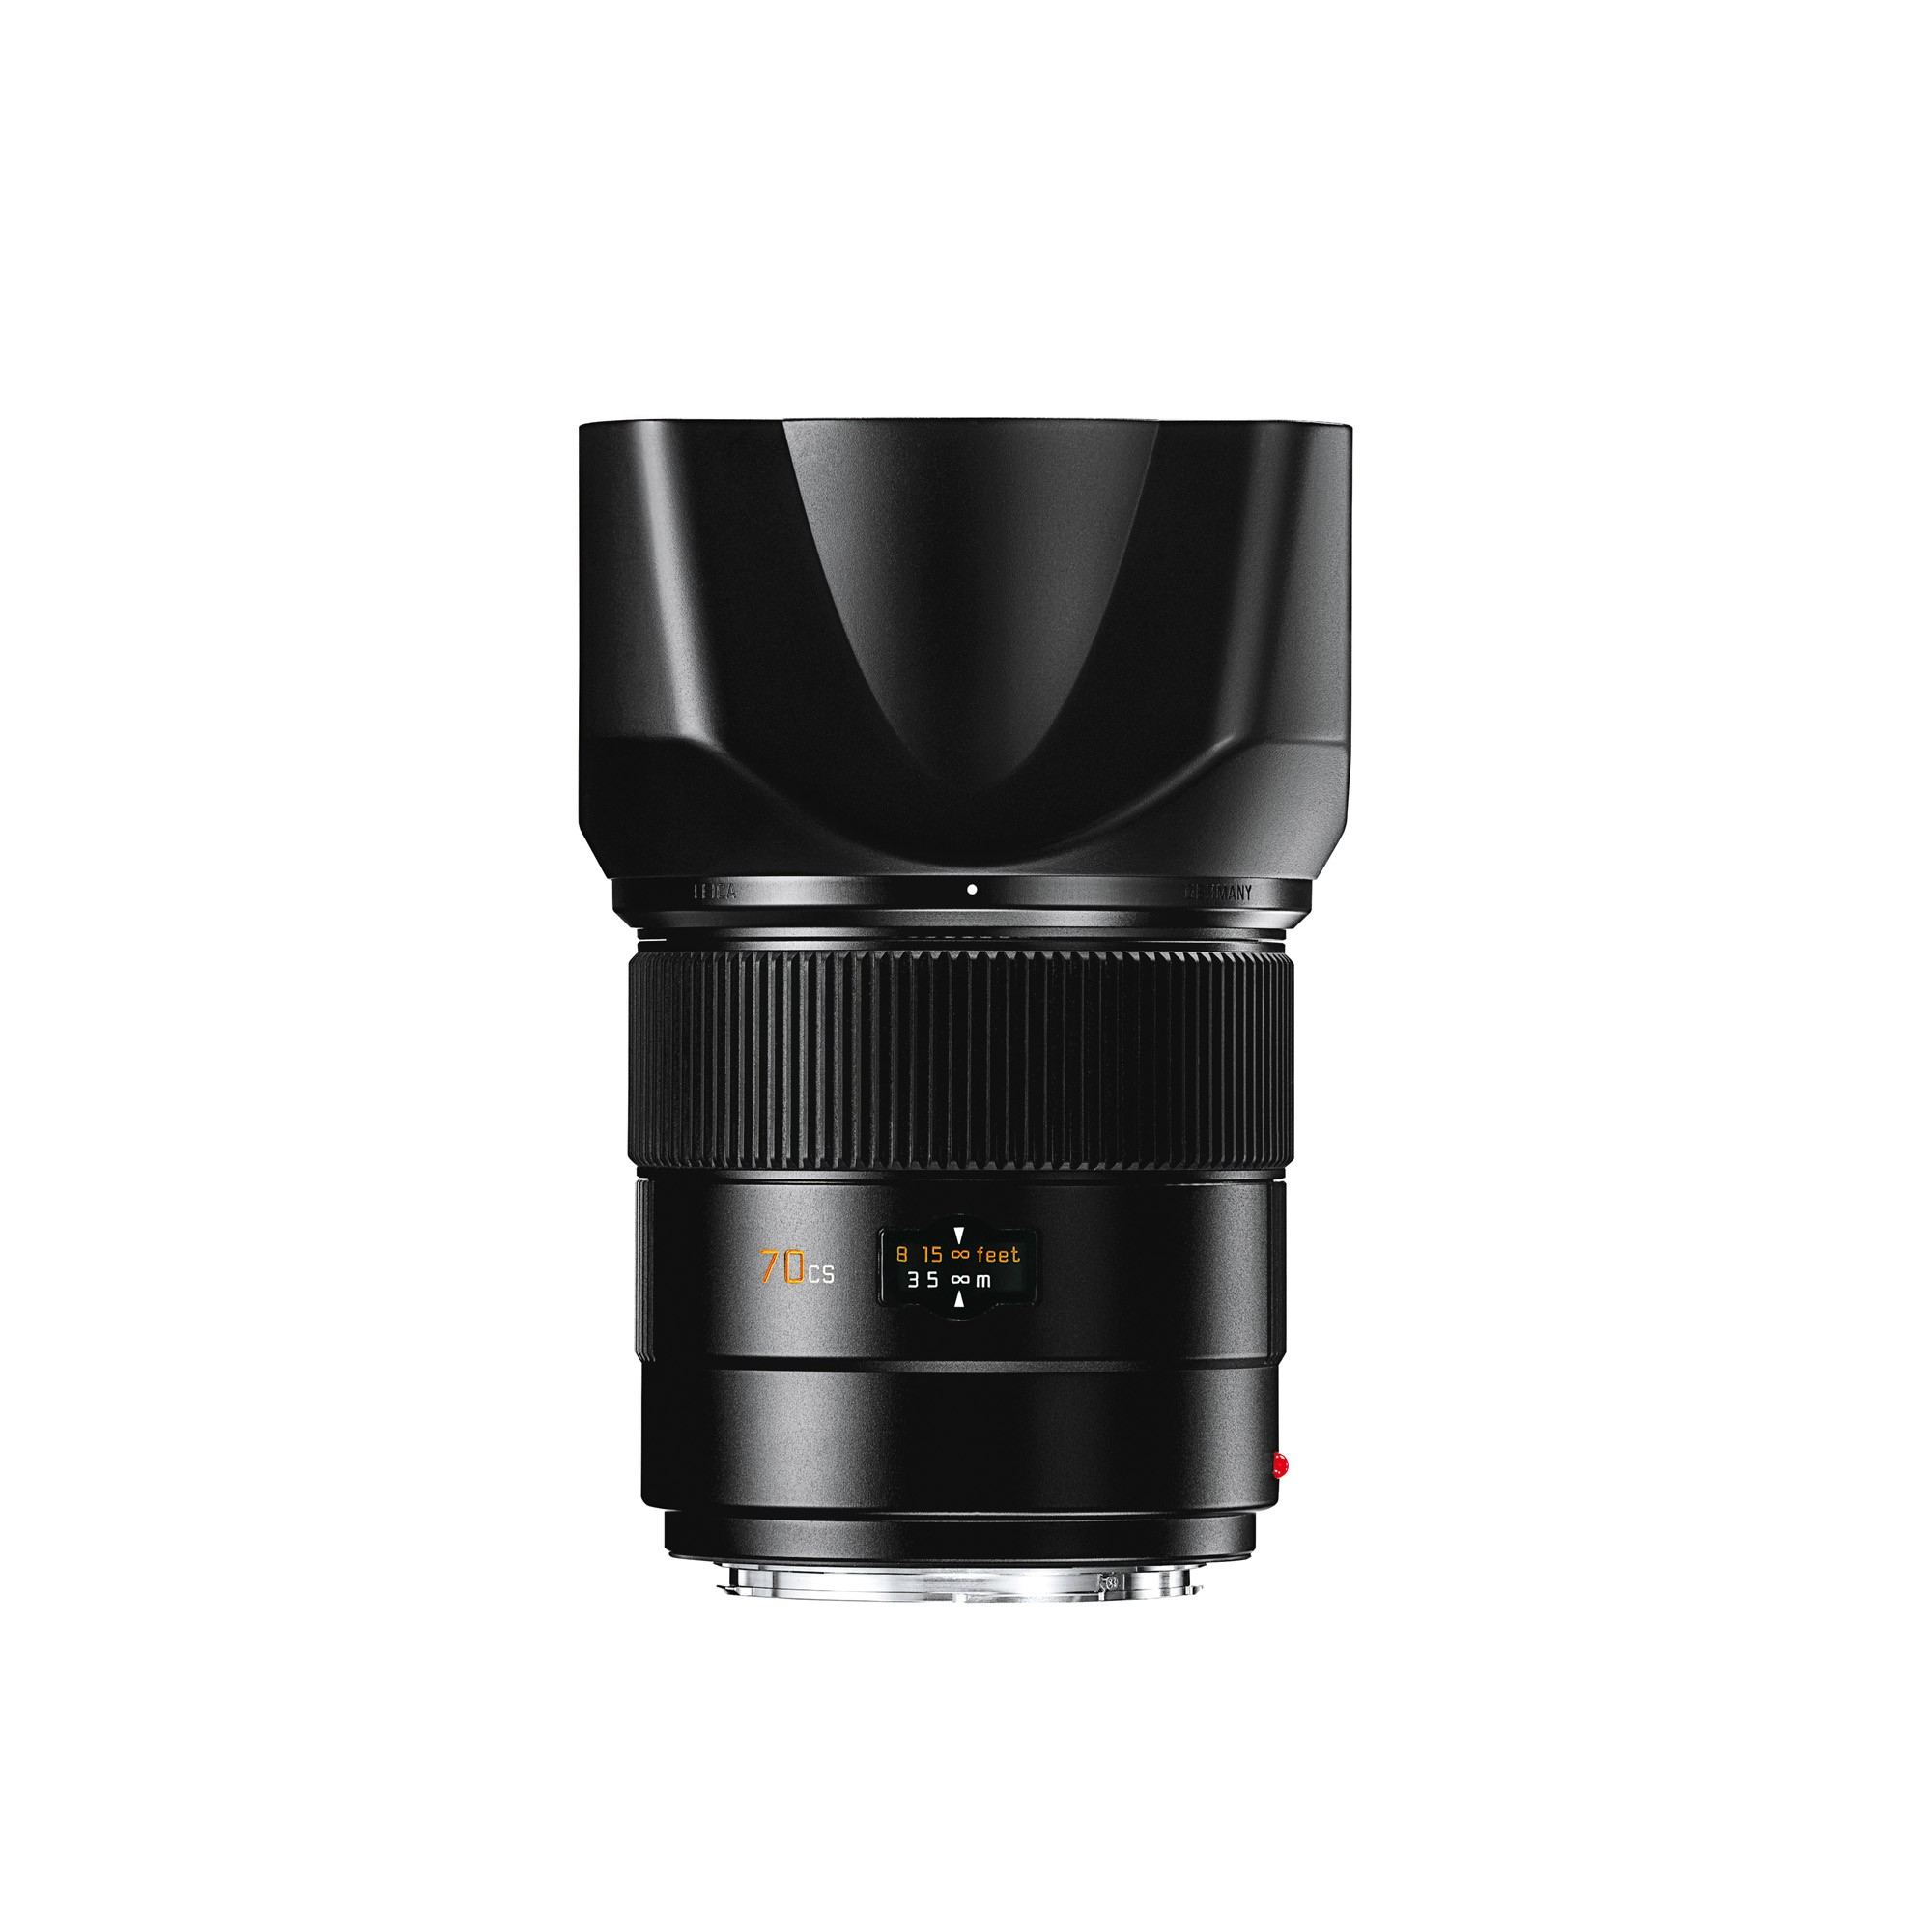 Leica SUMMARIT-S 70MM/2,5CS available to rent / verhuur / location at 50.8 Studio • Belgïe, Belgique, Belgium, Huur, Leica, Location, Louer, Photo, Rent, Rental, Sony, Strobe, Studio, Verhuur, Video